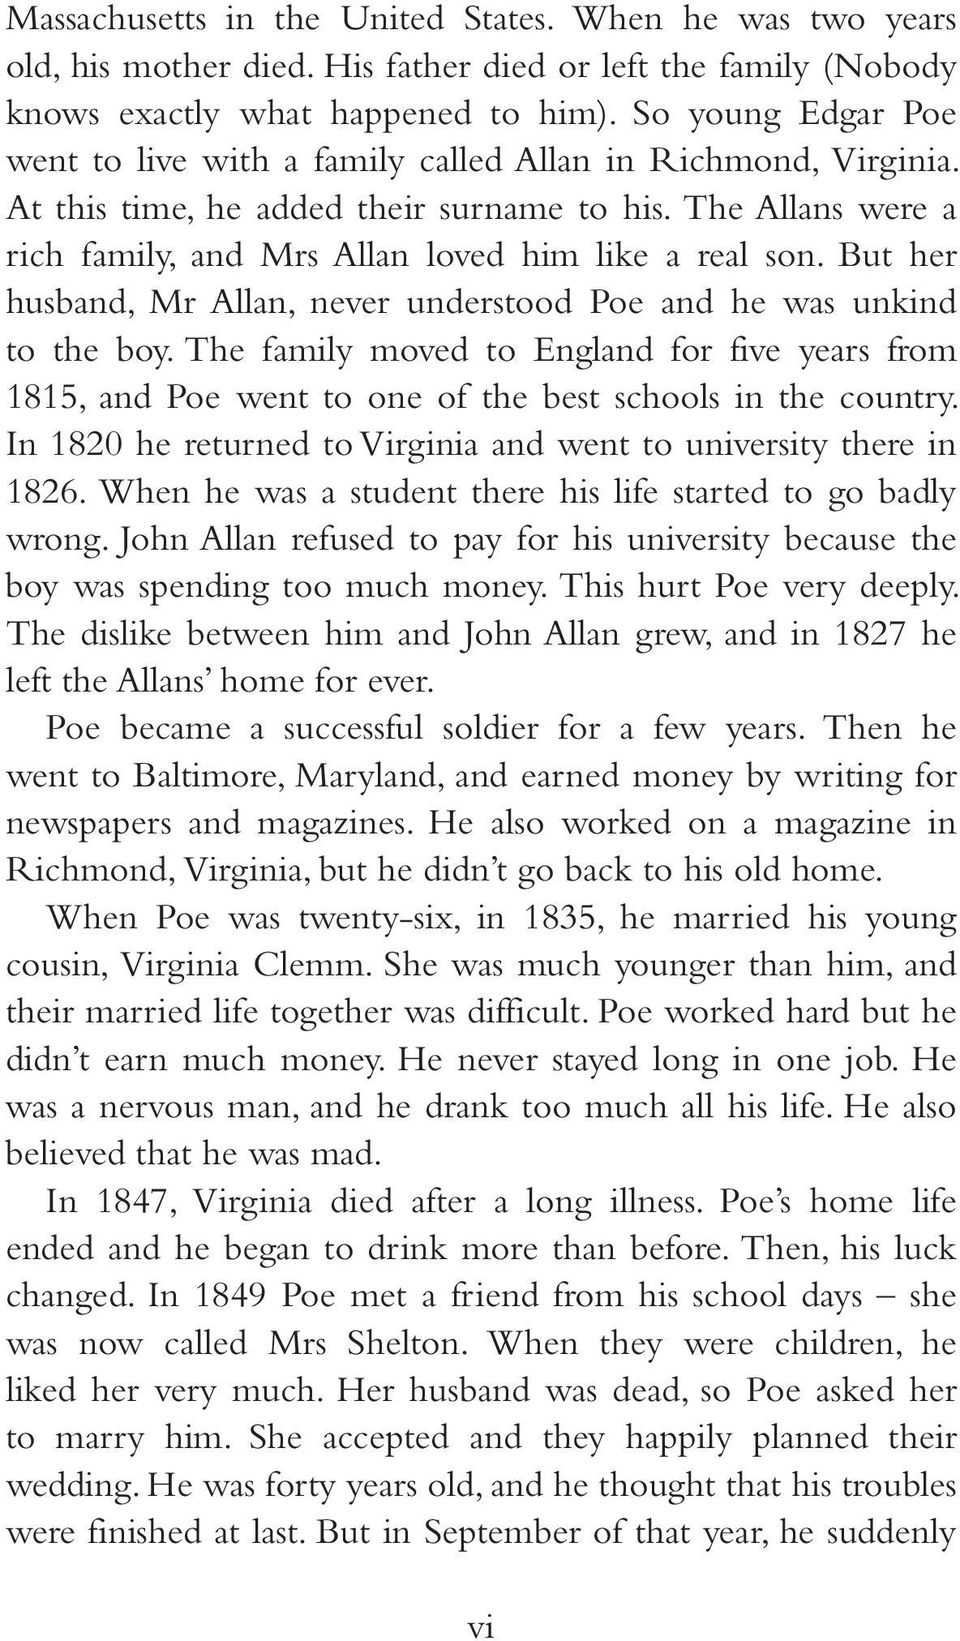 But her husband, Mr Allan, never understood Poe and he was unkind to the boy. The family moved to England for five years from 1815, and Poe went to one of the best schools in the country.